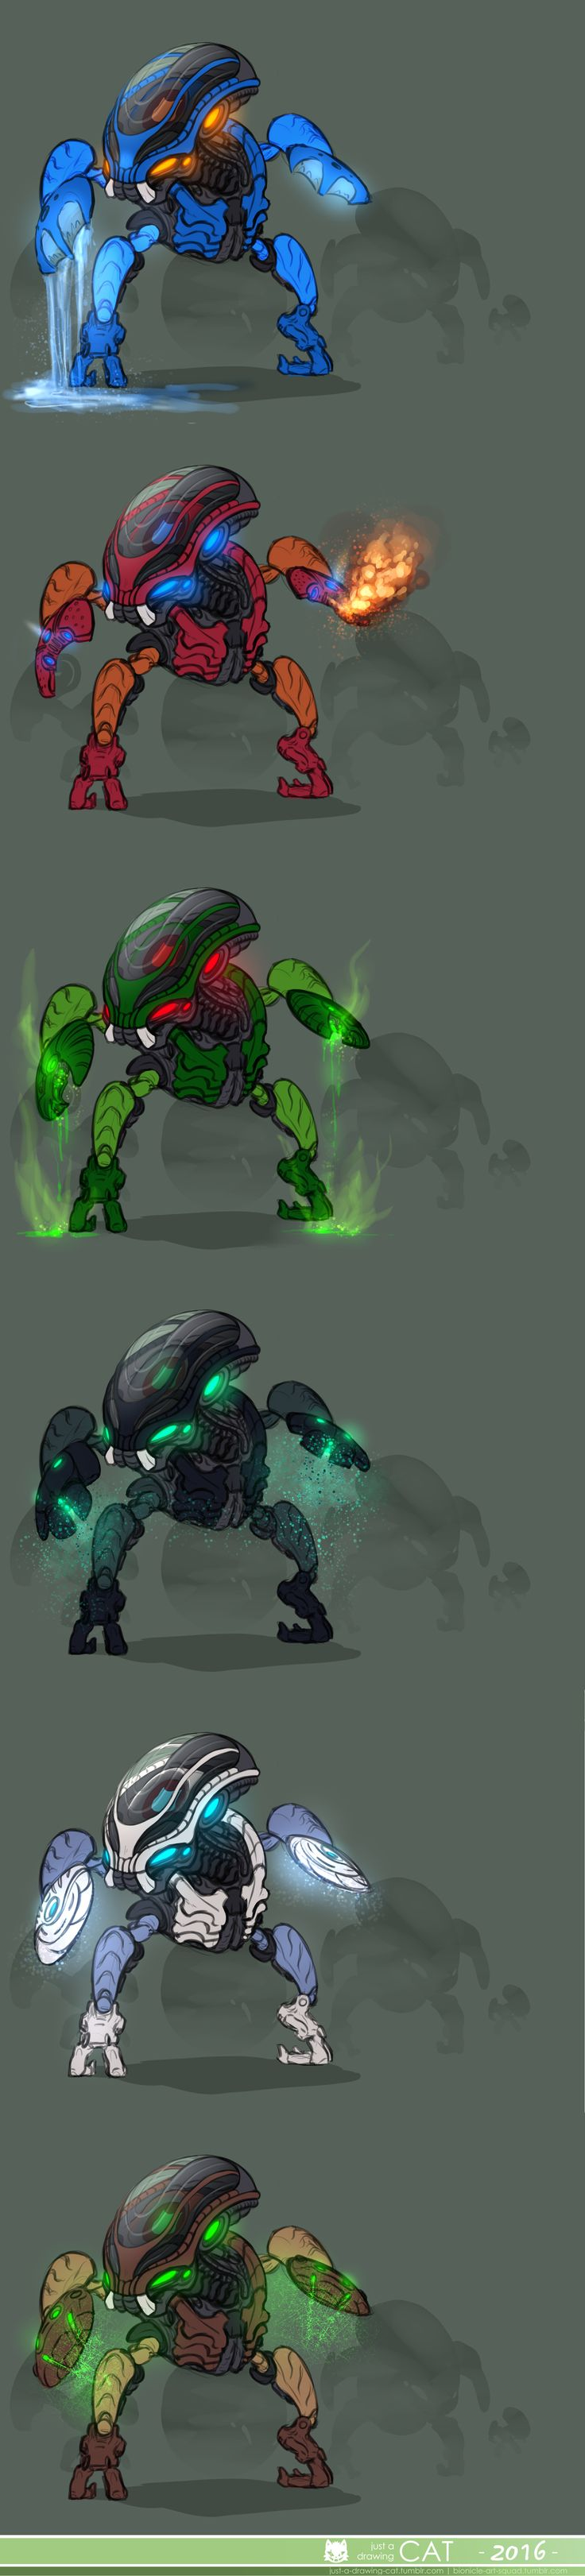 """""""It is said that the Bohrok sleep an eternal sleep, waiting to hatch. Once awakened, the swarms are unstoppable… a force so powerful, they can reduce mountains to rubble and turn life-g..."""